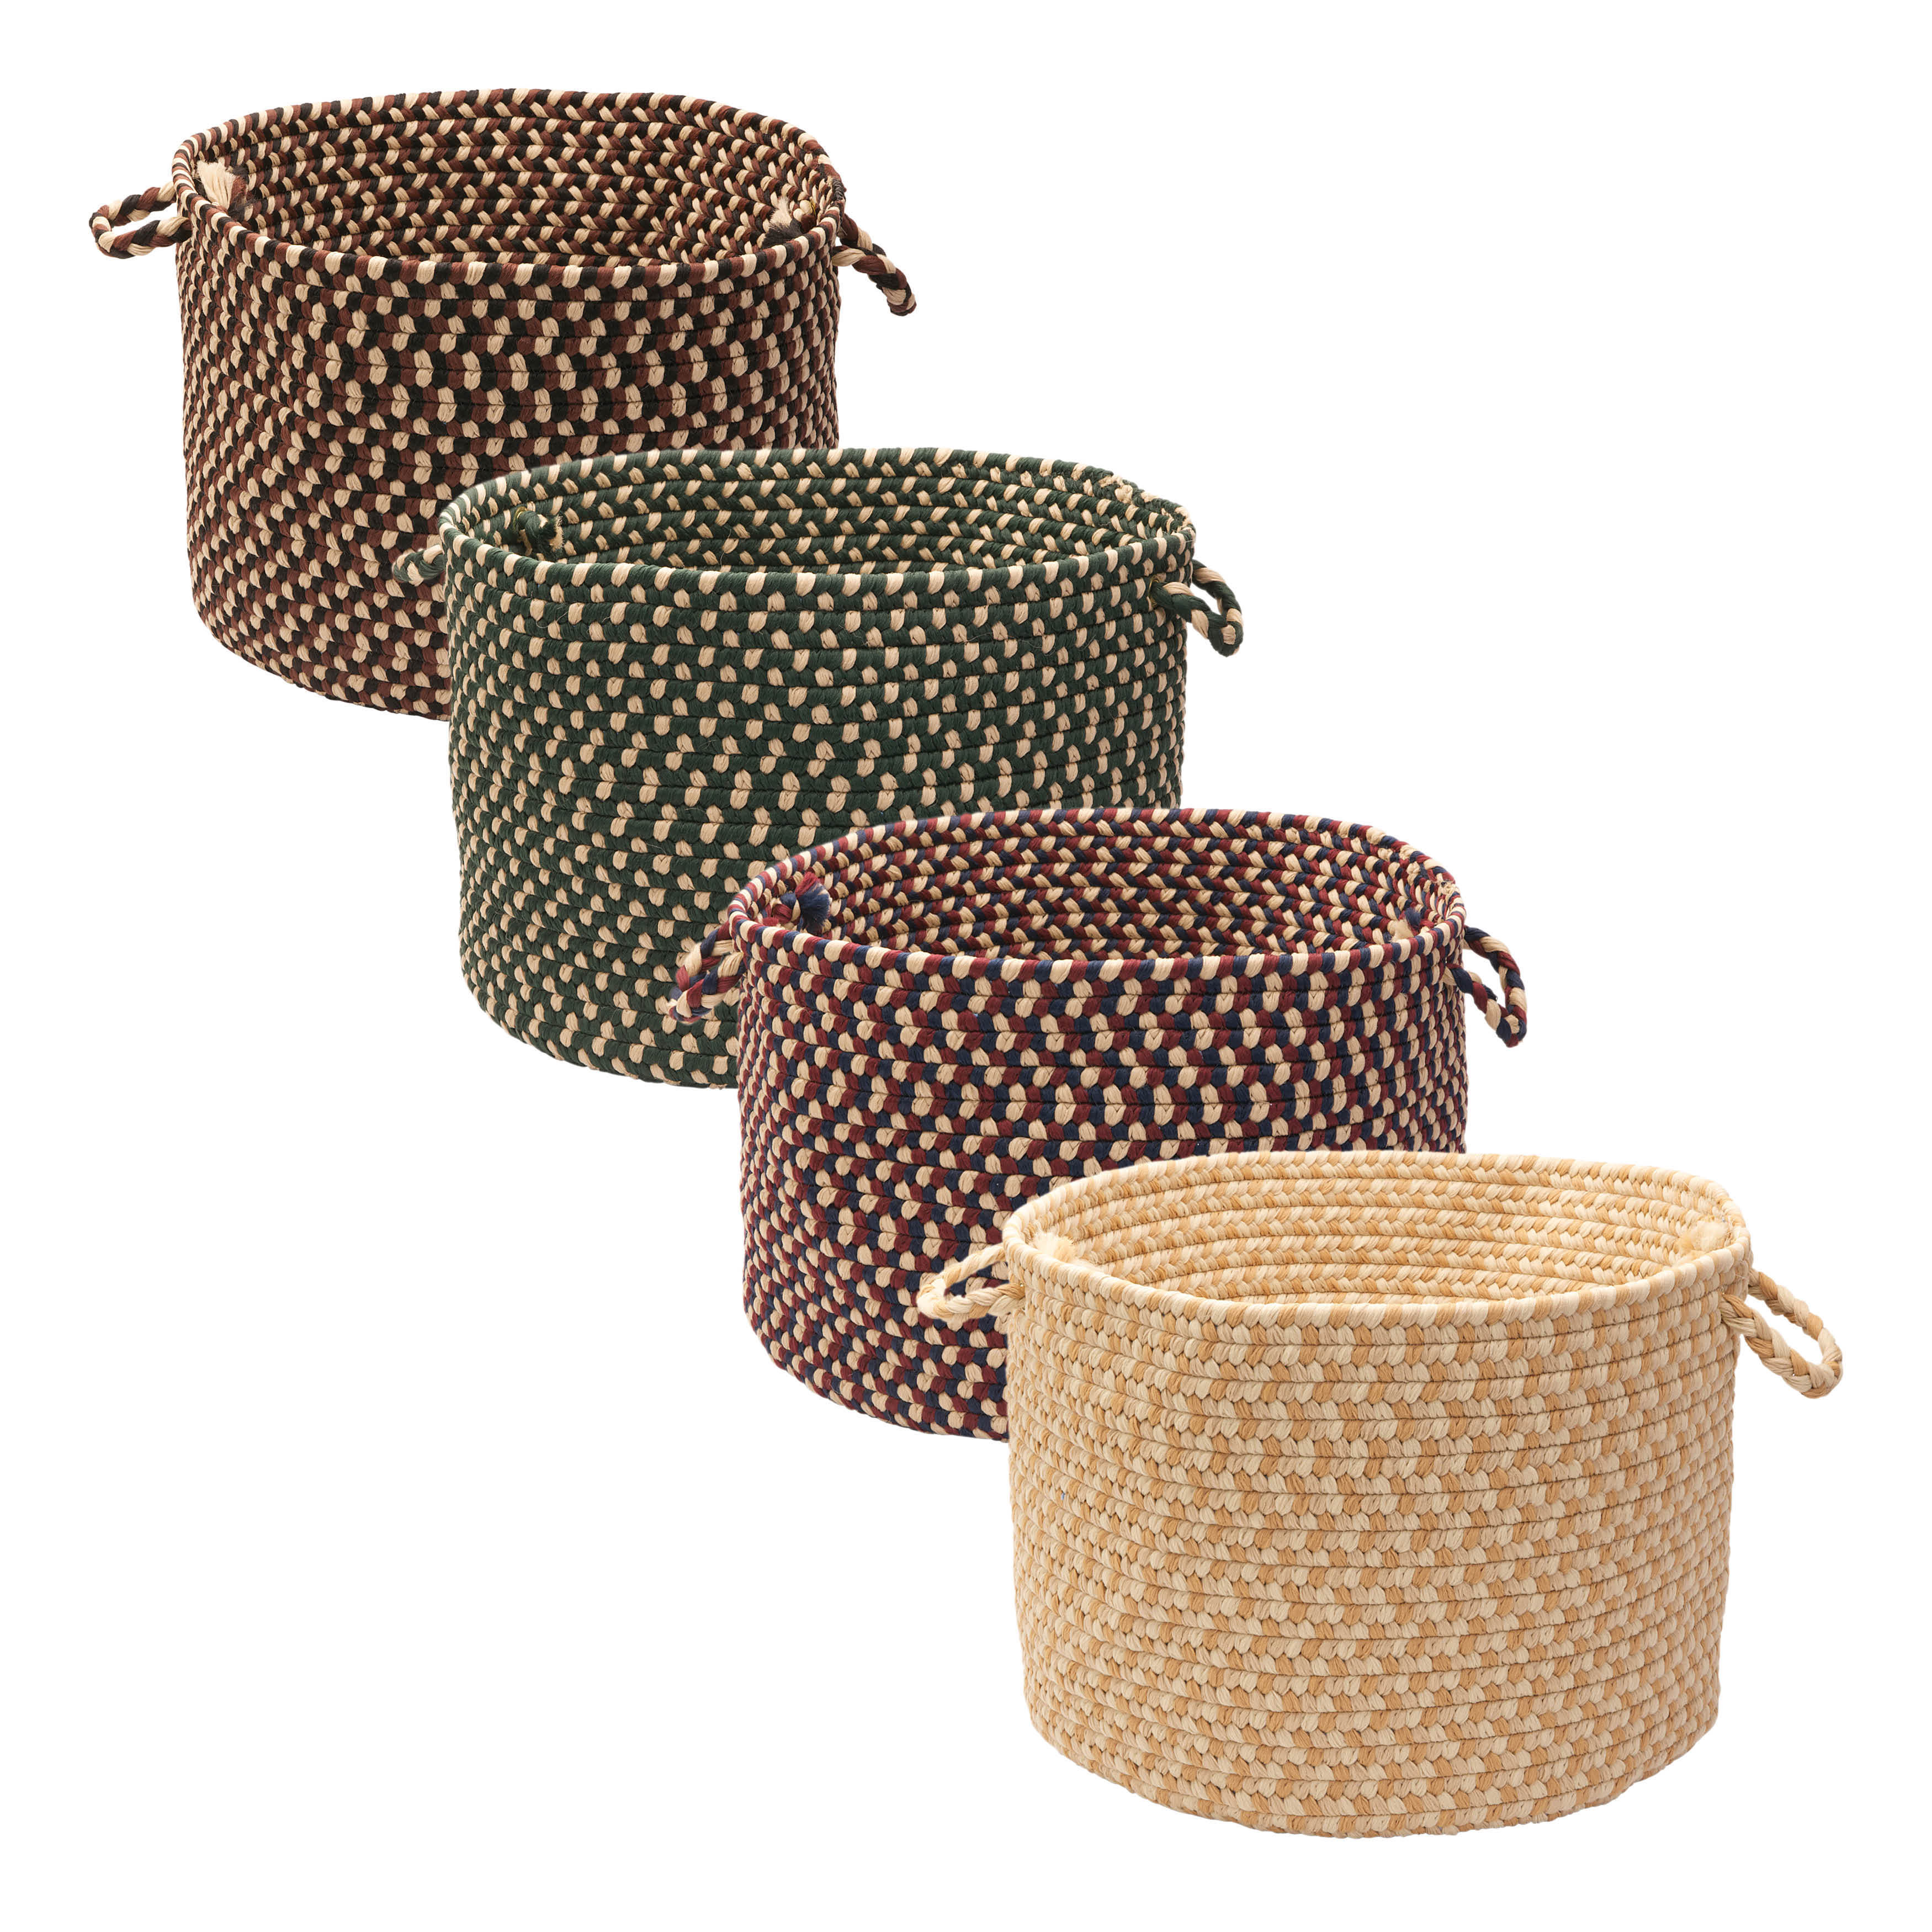 Stable Hill Blackberry Colored Basket   Free Shipping Today   Overstock.com    14258501